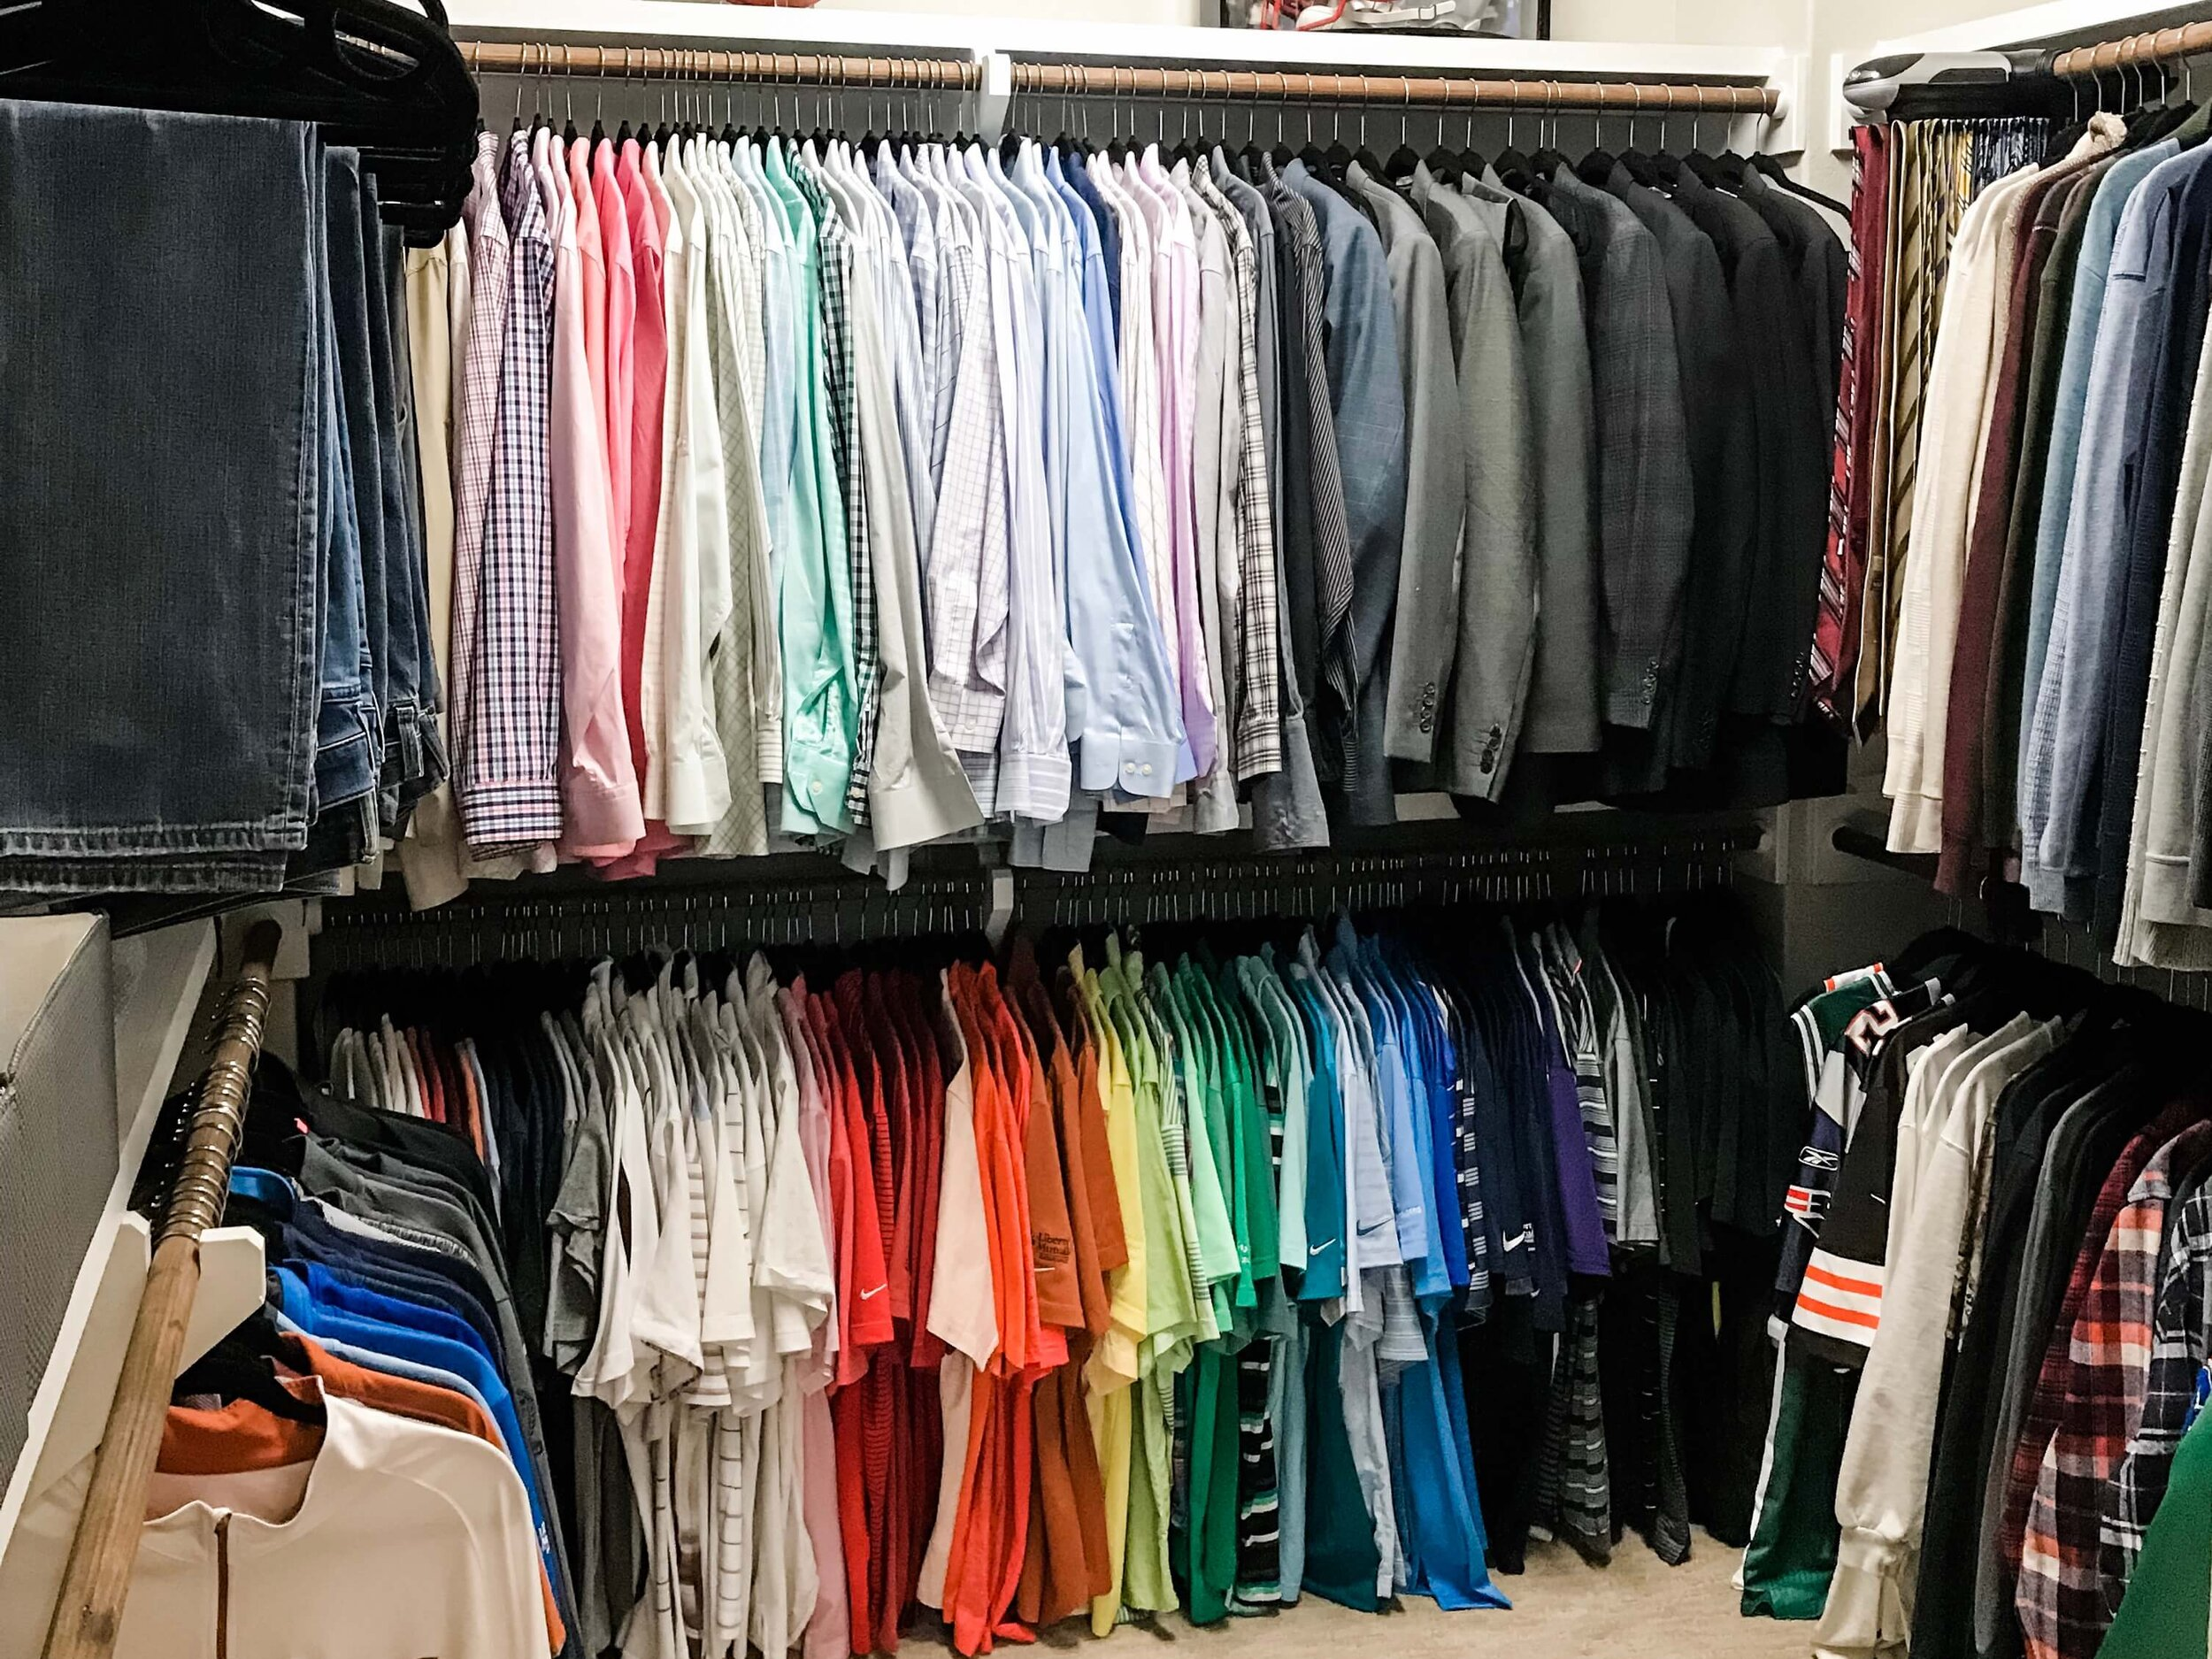 Rainbow Need A Closet Refresh?  7 Easy Organizing Tips To Instantly Transform Your Closet.jpg